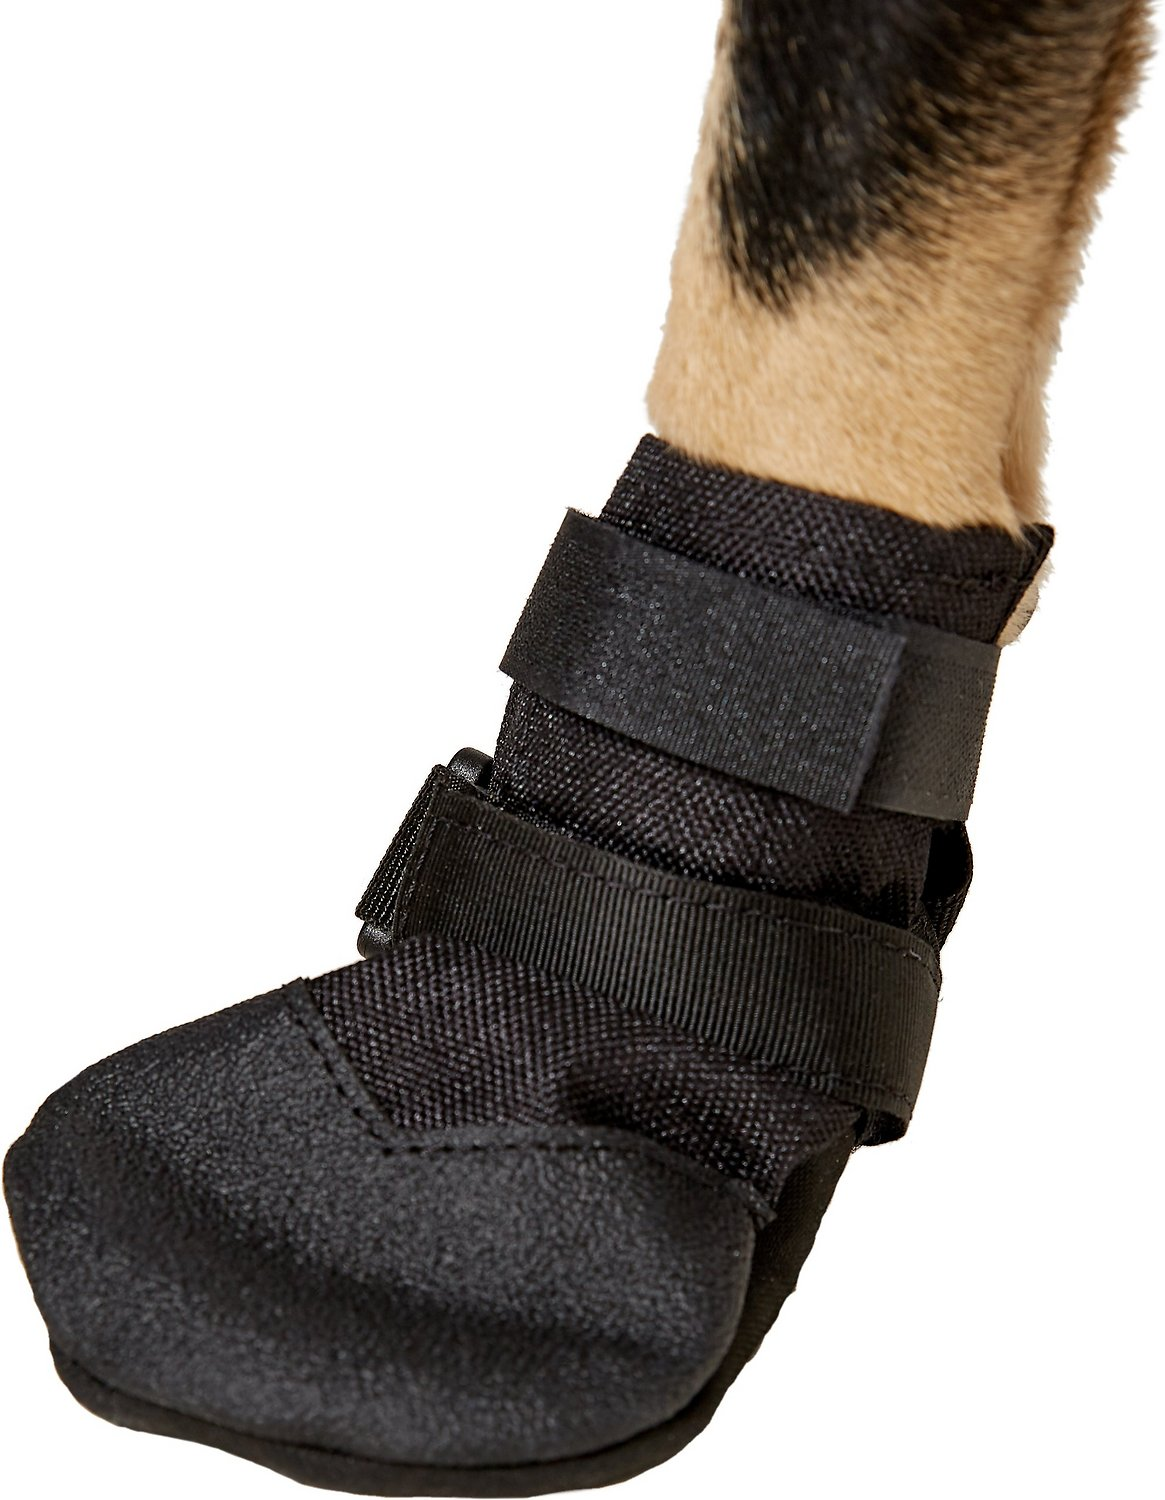 Ultra Paws Rugged Dog Boots Black 4 Count Medium